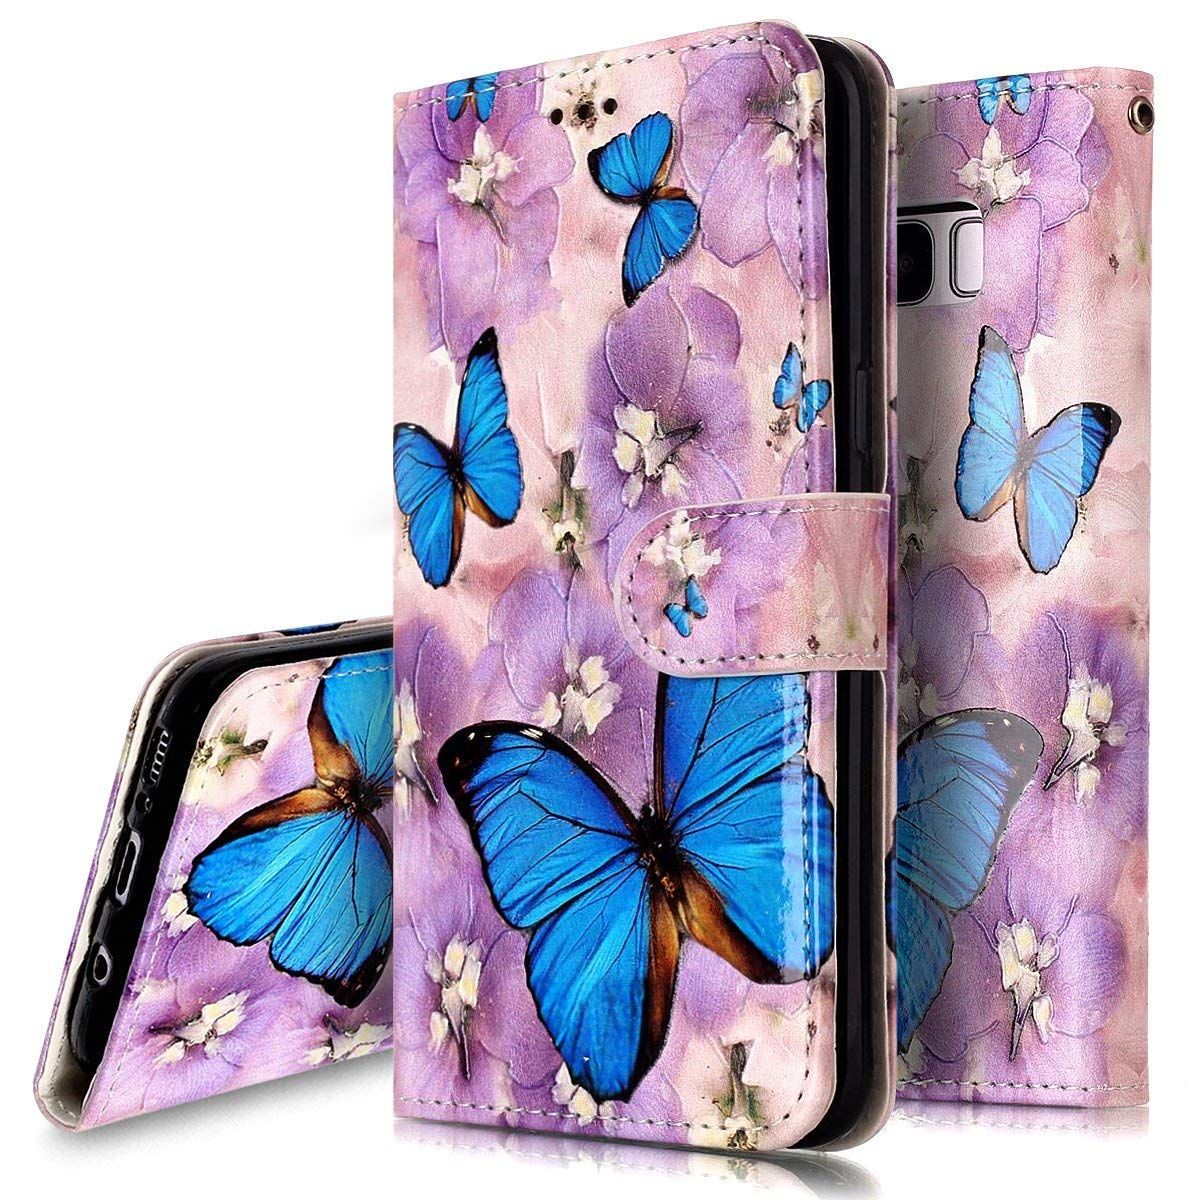 PHEZEN Case for Samsung Galaxy A50 Wallet Case,Retro Art Paint PU Leather Bookstyle Magnetic Stand Flip Folio Case Full Body Protective Phone Case Cover for Galaxy A50 - Flower Butterfly by PHEZEN